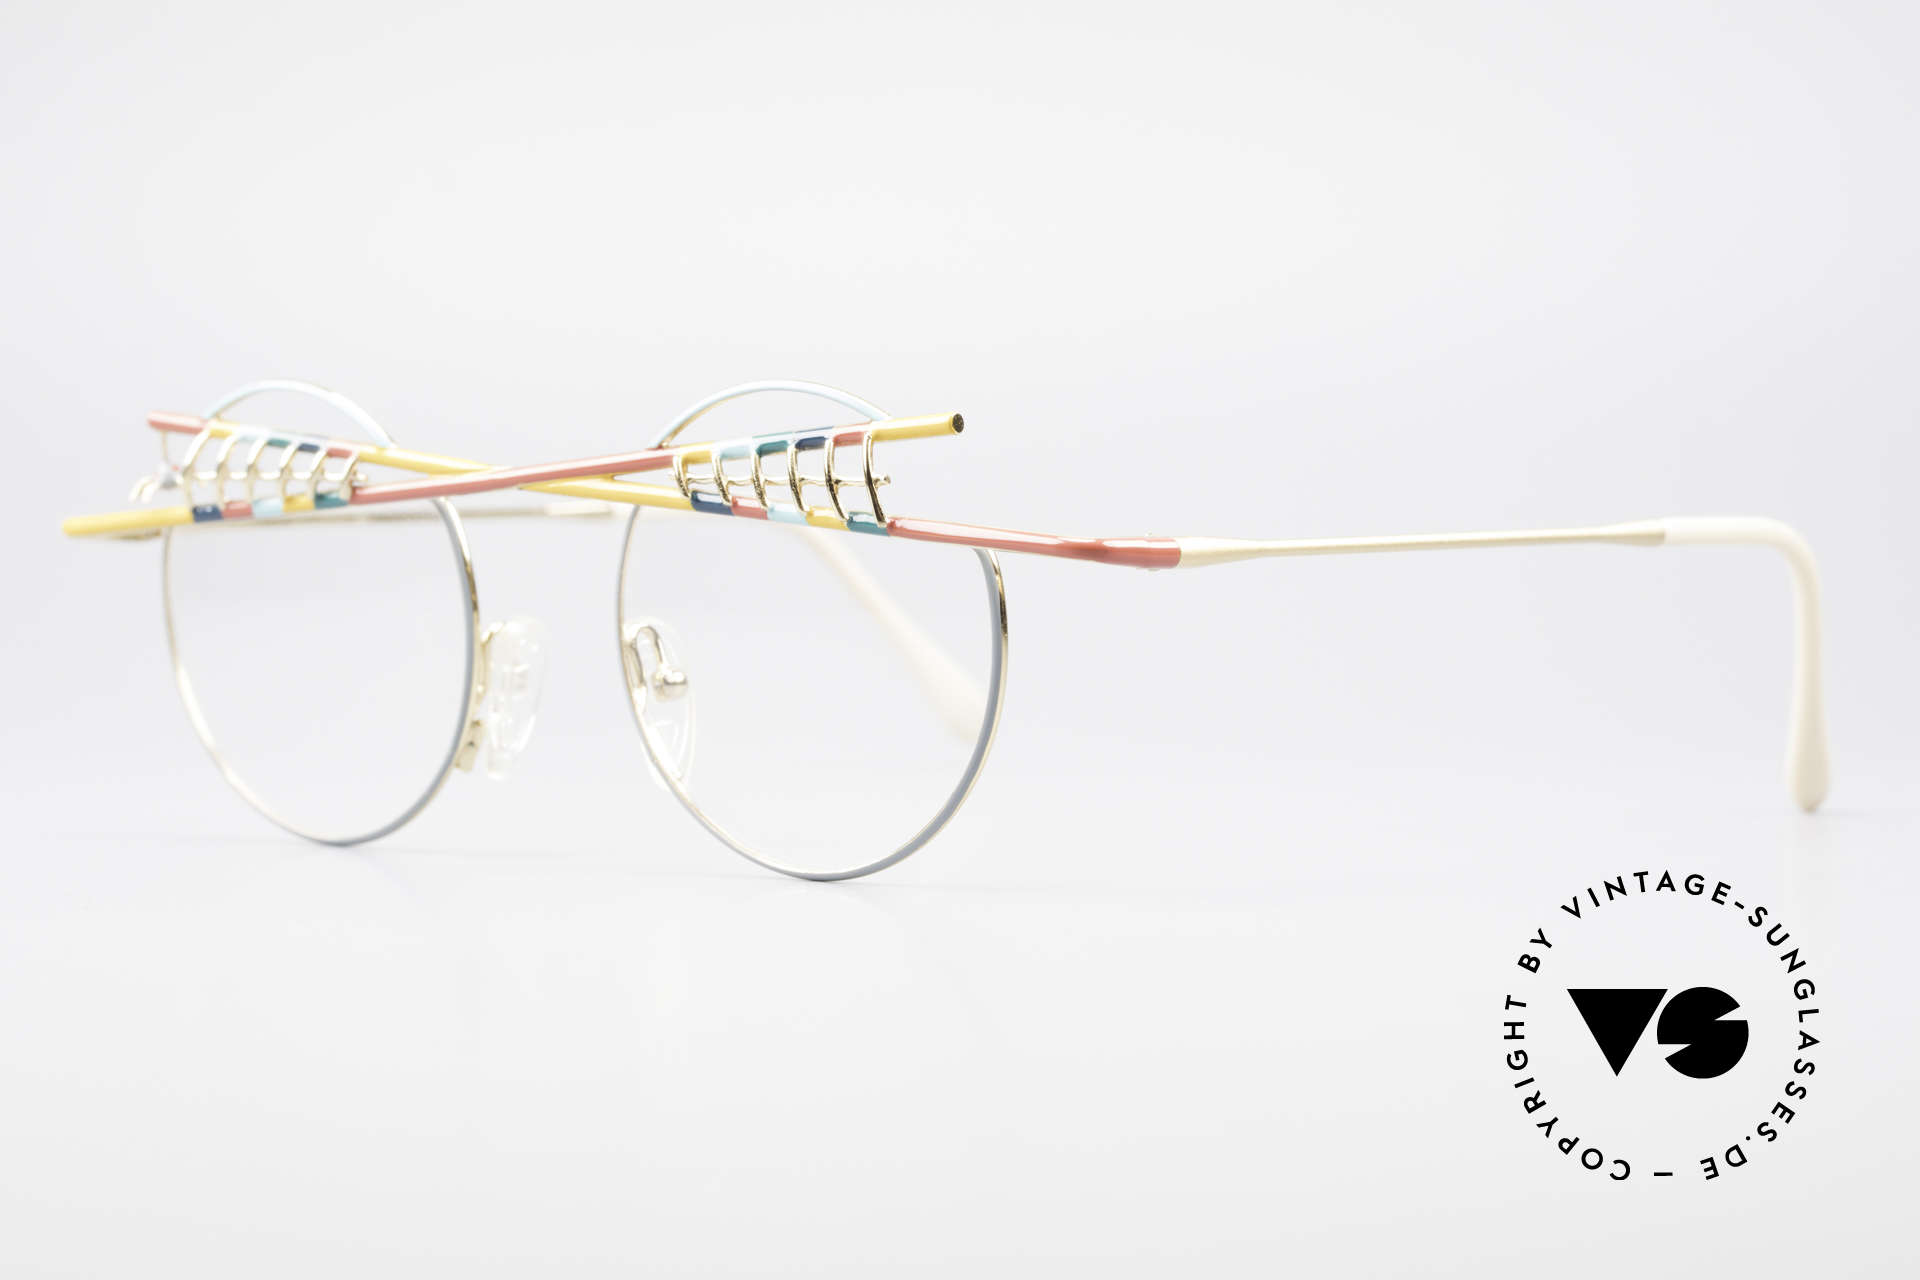 Taxi ST1 by Casanova The Jester Glasses Art Frame, represents the exuberance of the Venetian CARNIVAL, Made for Men and Women